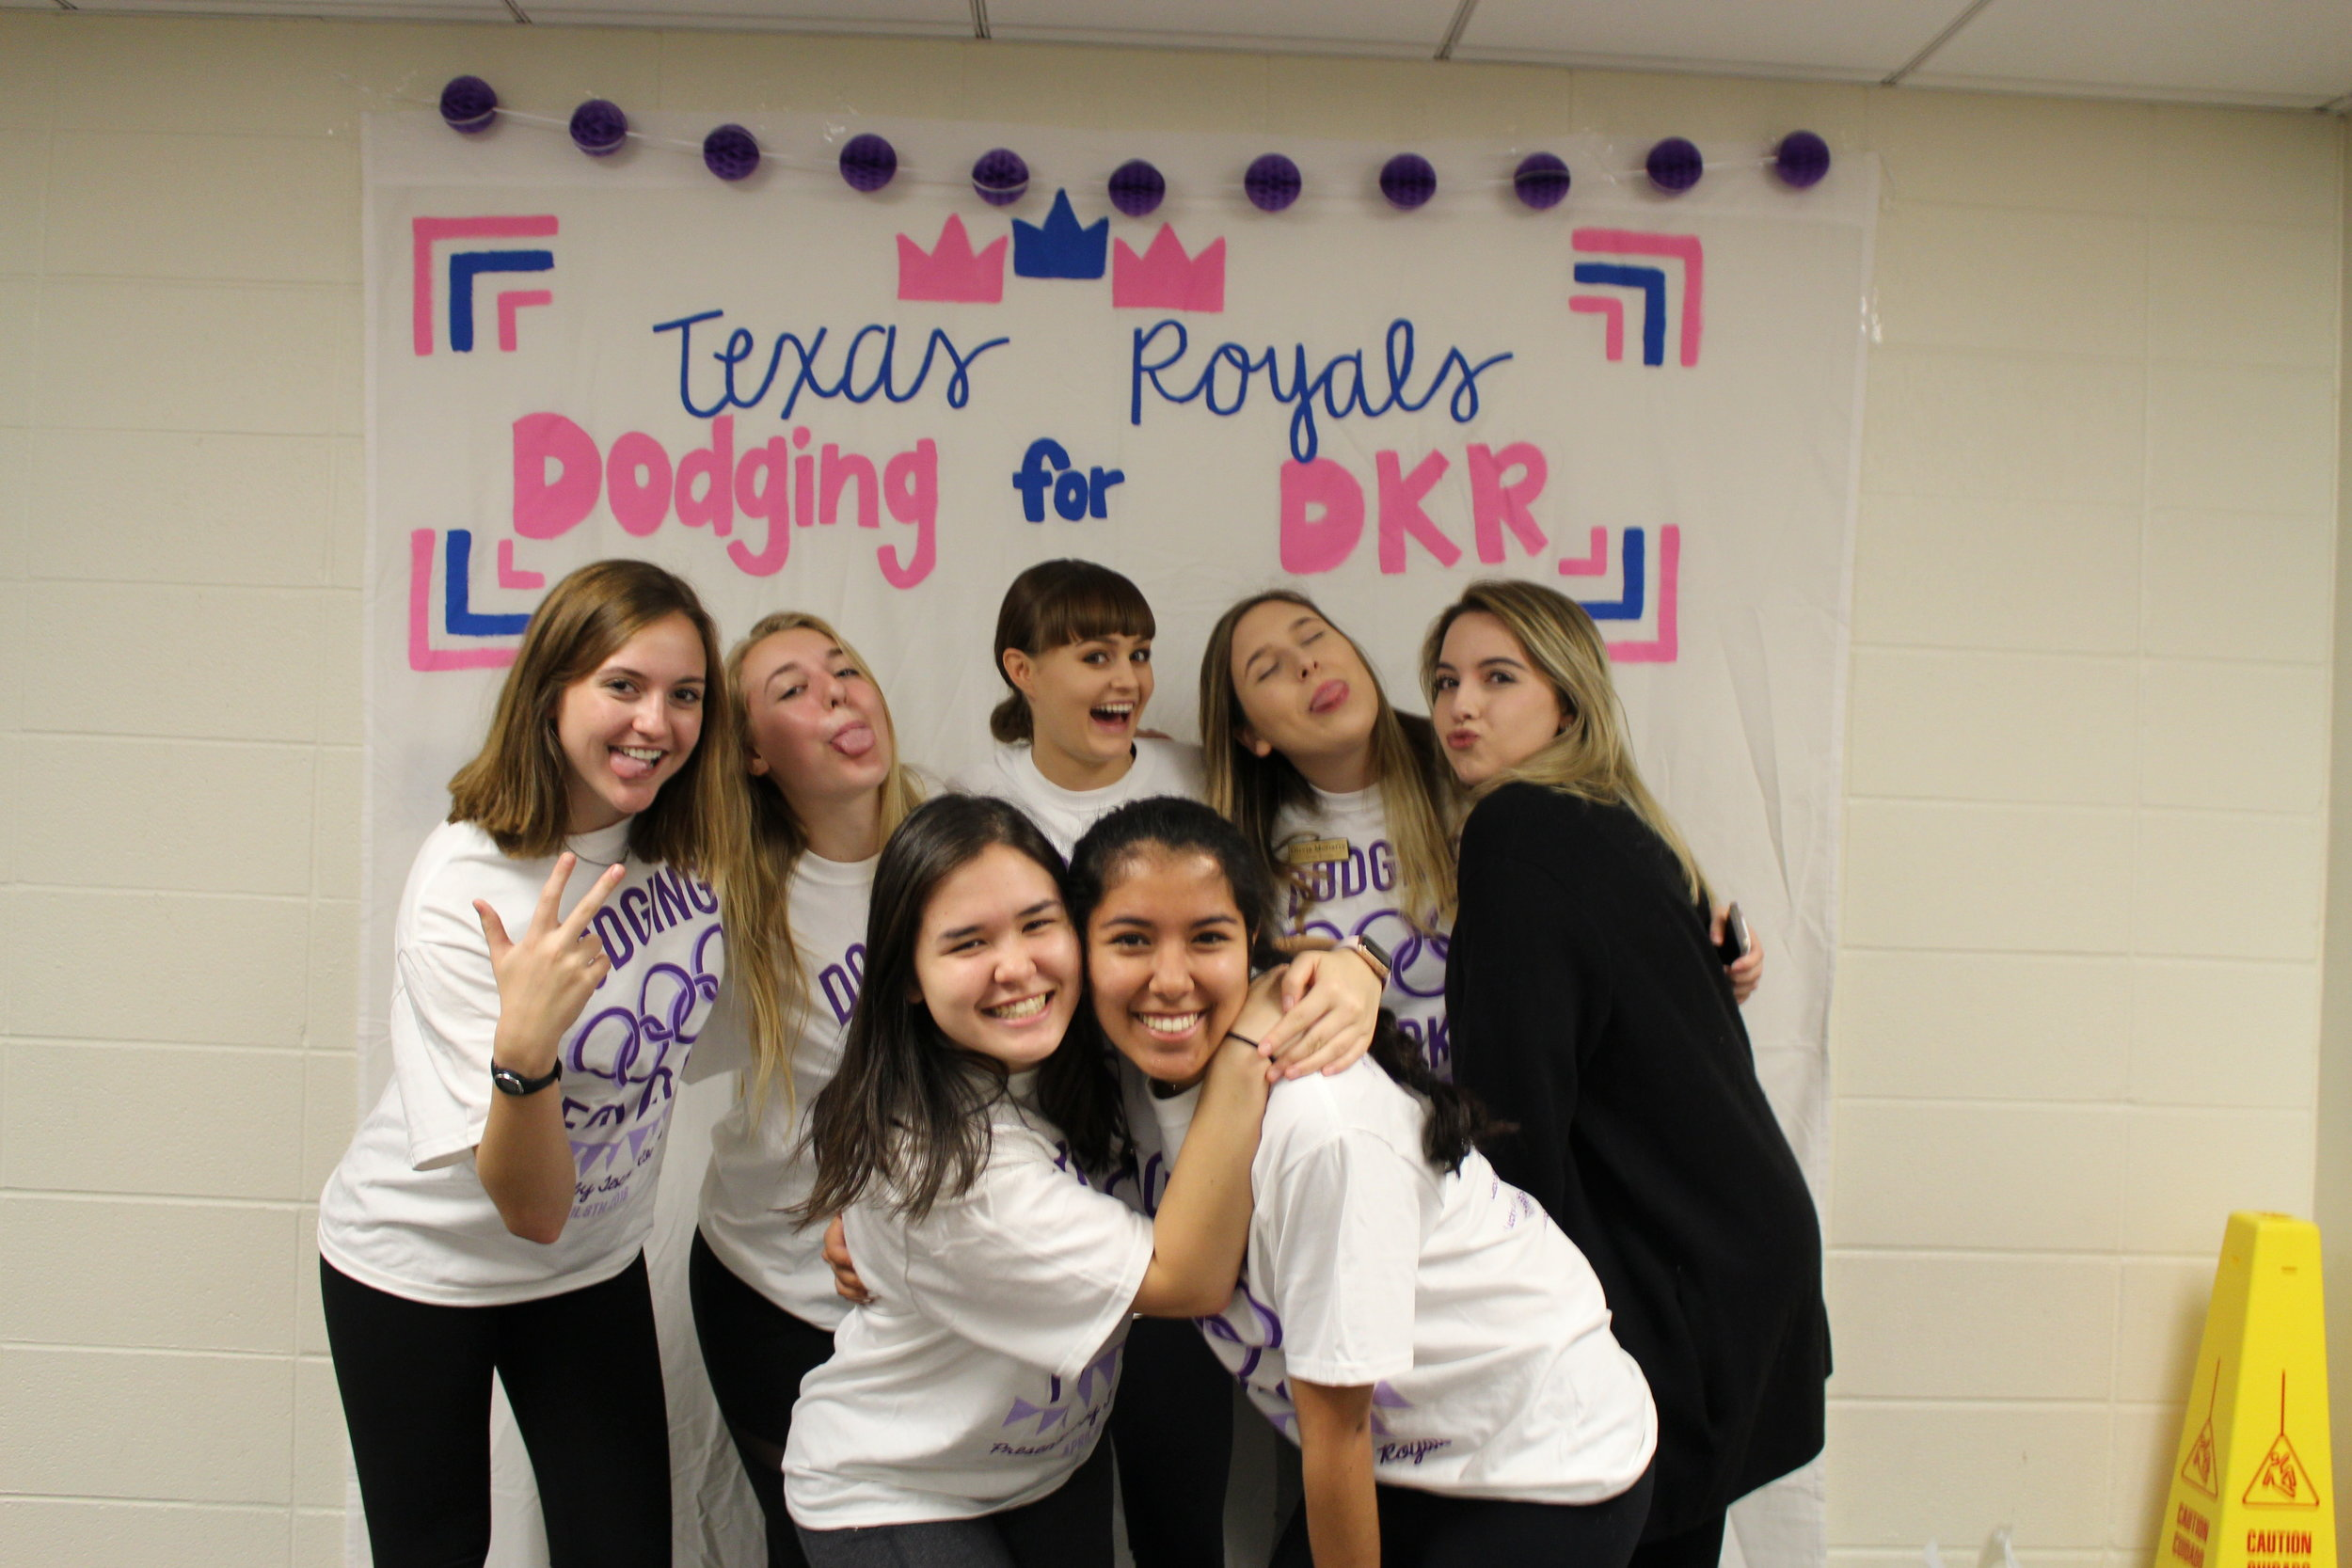 Hannah, Addison, Taylor, Olivia, Clare, Claire and Julianna during Spring 2018 Dodging for DKR.